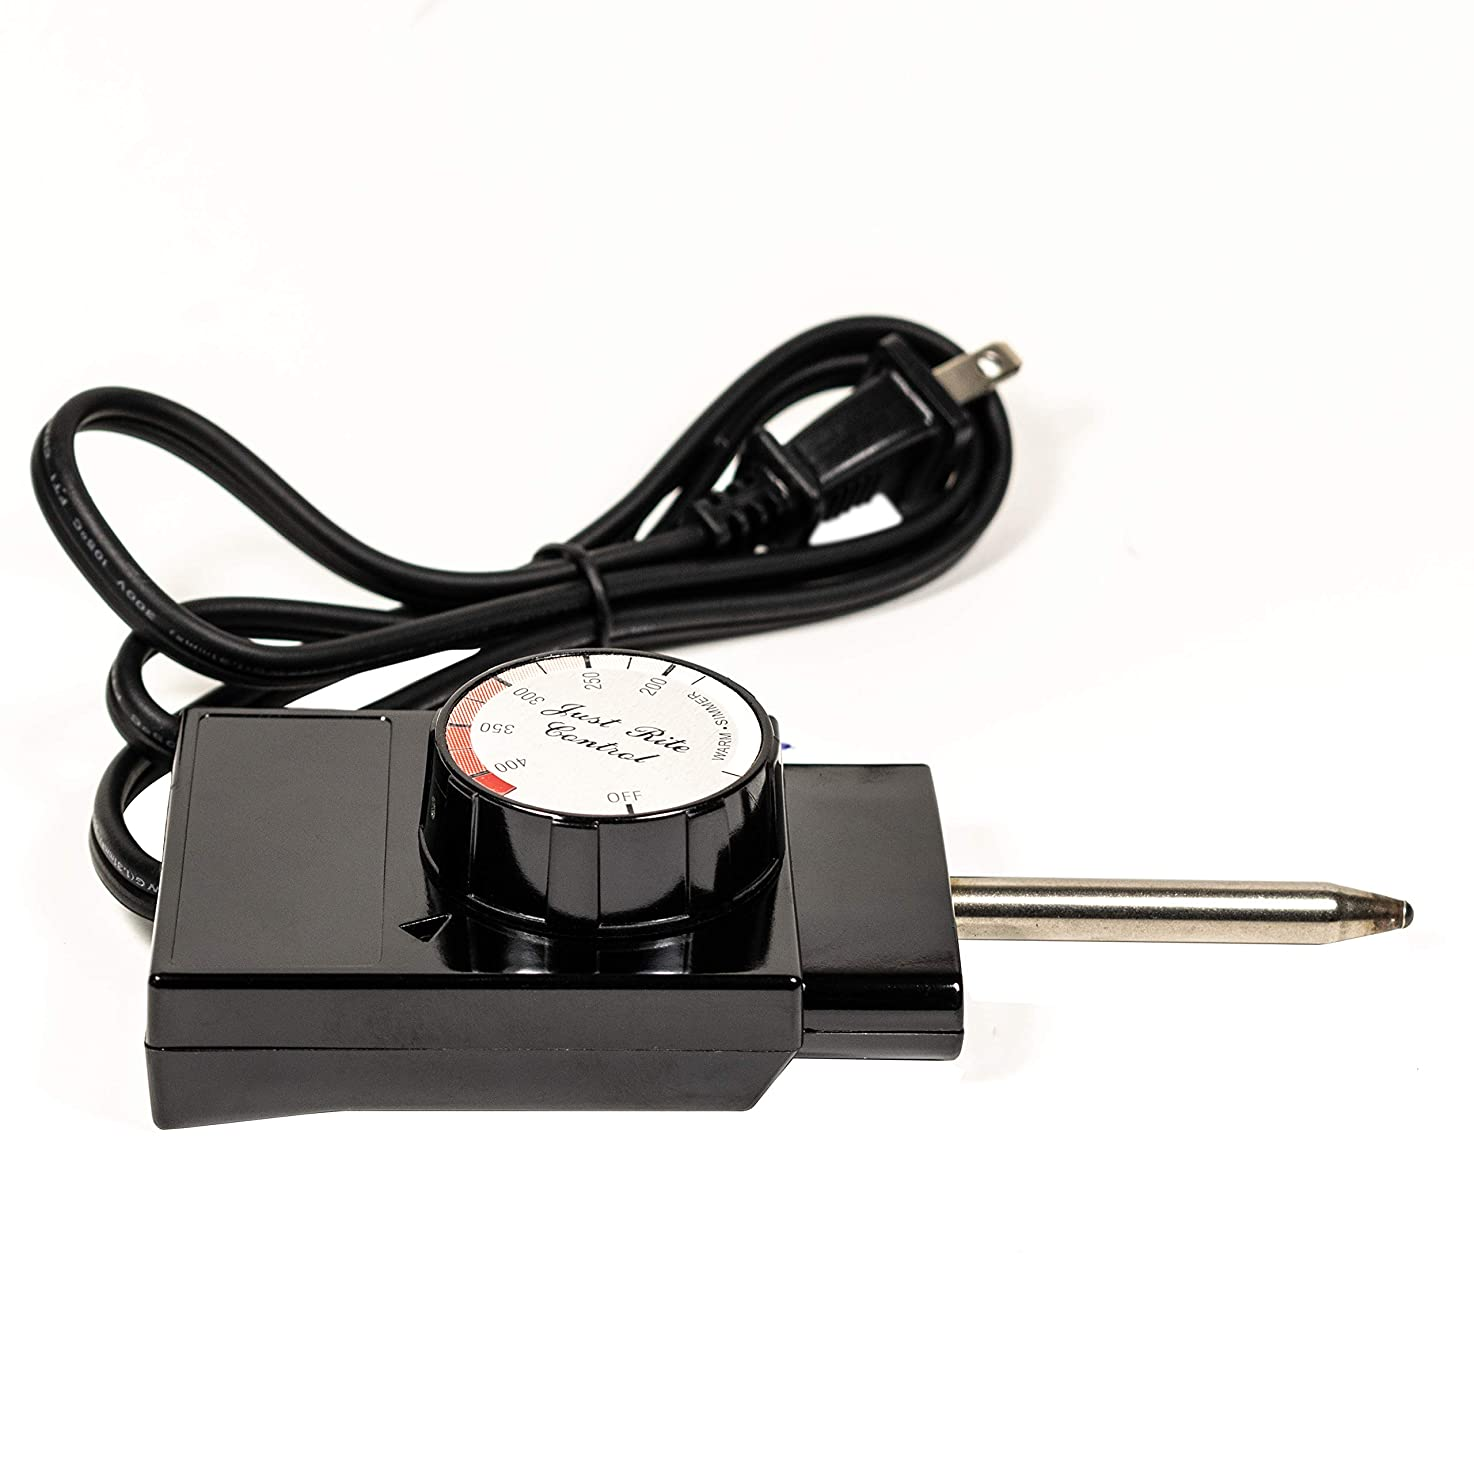 Univen Wide Thermostat Control Cord fits Frypans and Skillets SEE MEASUREMENTS